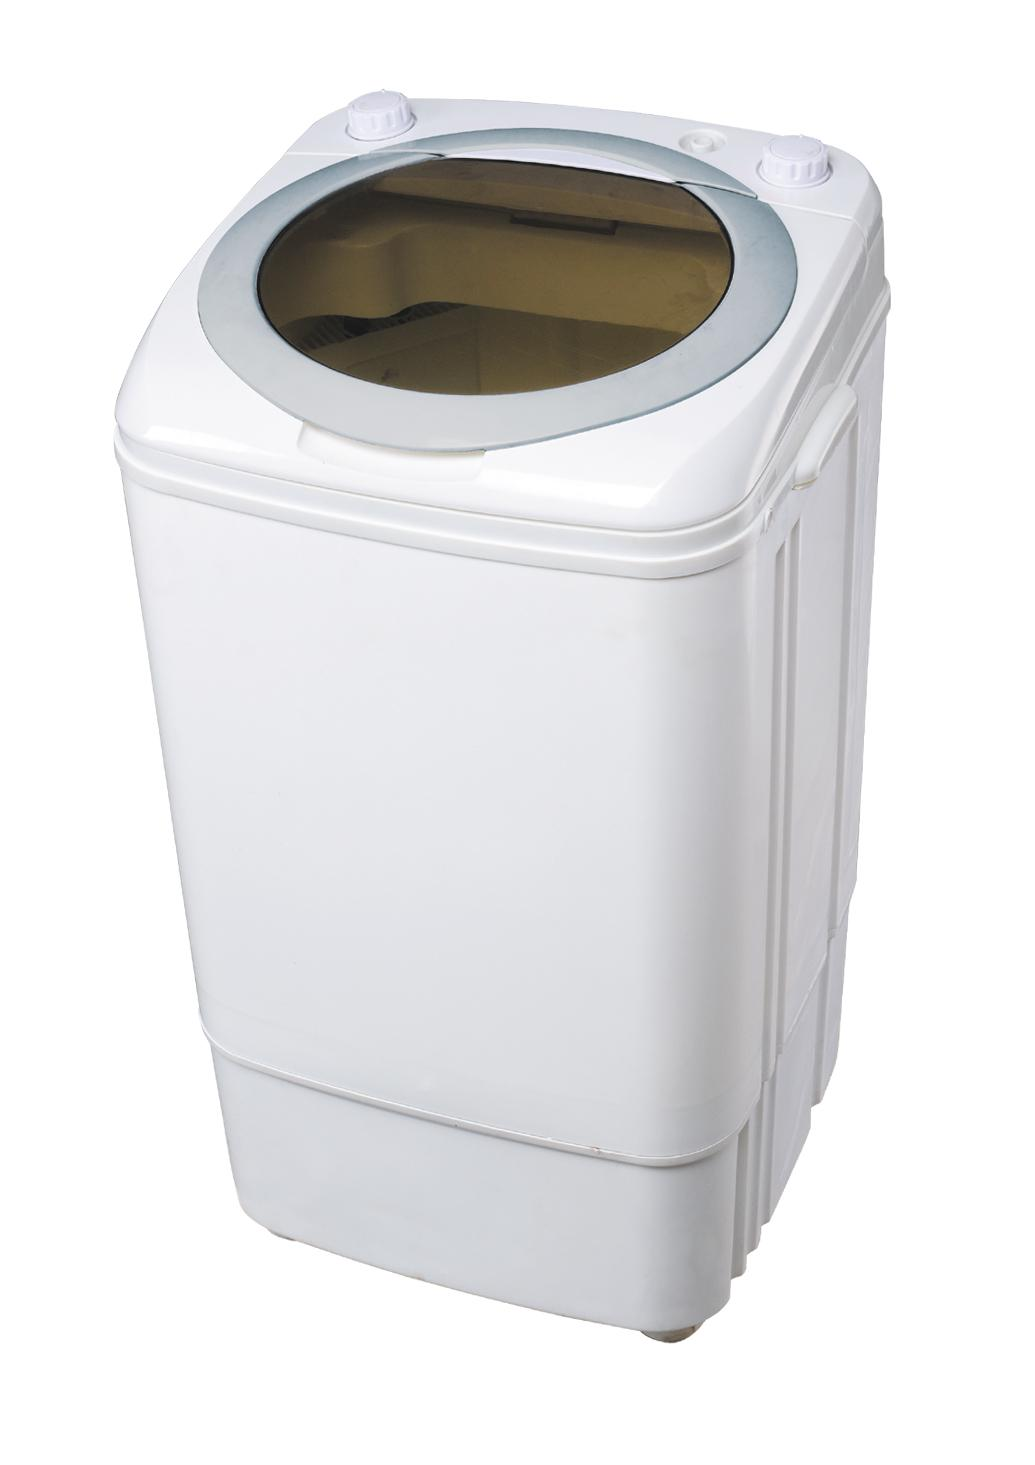 machine a laver portable mini washing machine 4 5 kg portable twin tub camping washer spin. Black Bedroom Furniture Sets. Home Design Ideas